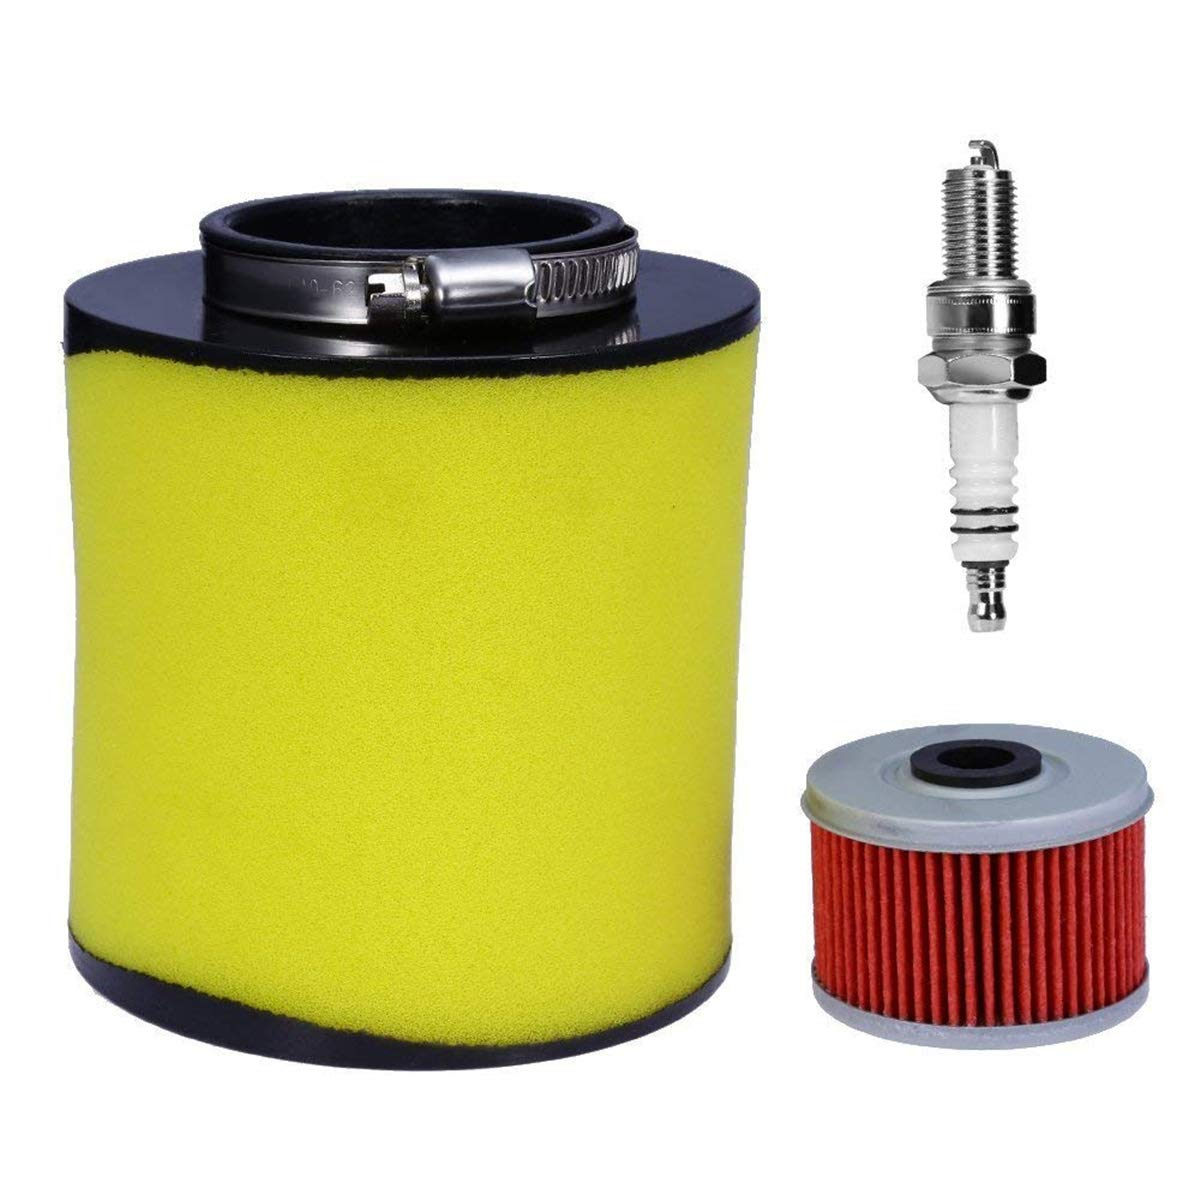 Amhousejoy Air Filter Replacement for Honda TRX350TM TRX350TE TRX350FM TRX350FE Rancher/Foreman 400 & 450 Fourtrax 300 1992-2000 Included Oil Filter & Spark Plug Haocheng Parts Co. Ltd.